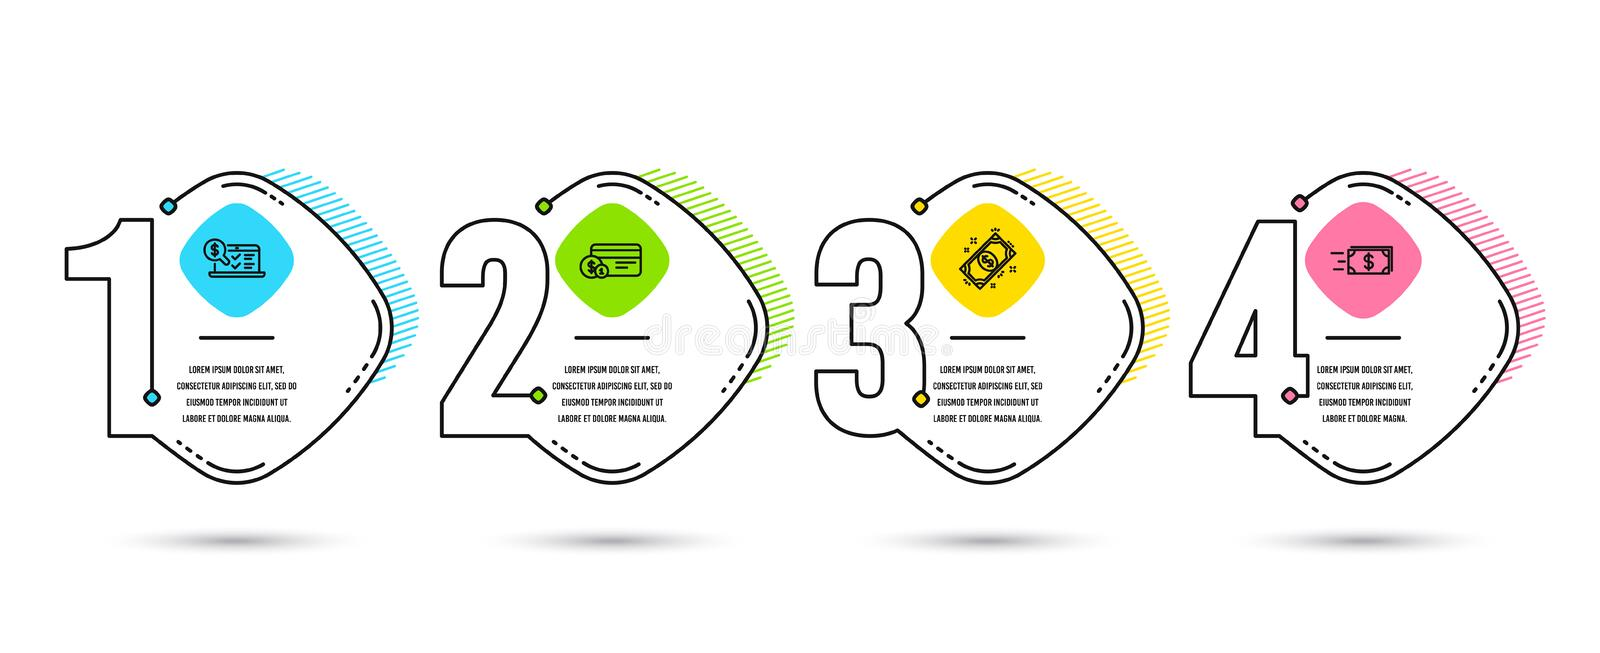 Payment, Payment method and Online accounting icons. Money transfer sign. Finance, Web audit, Cash delivery. Vector royalty free illustration